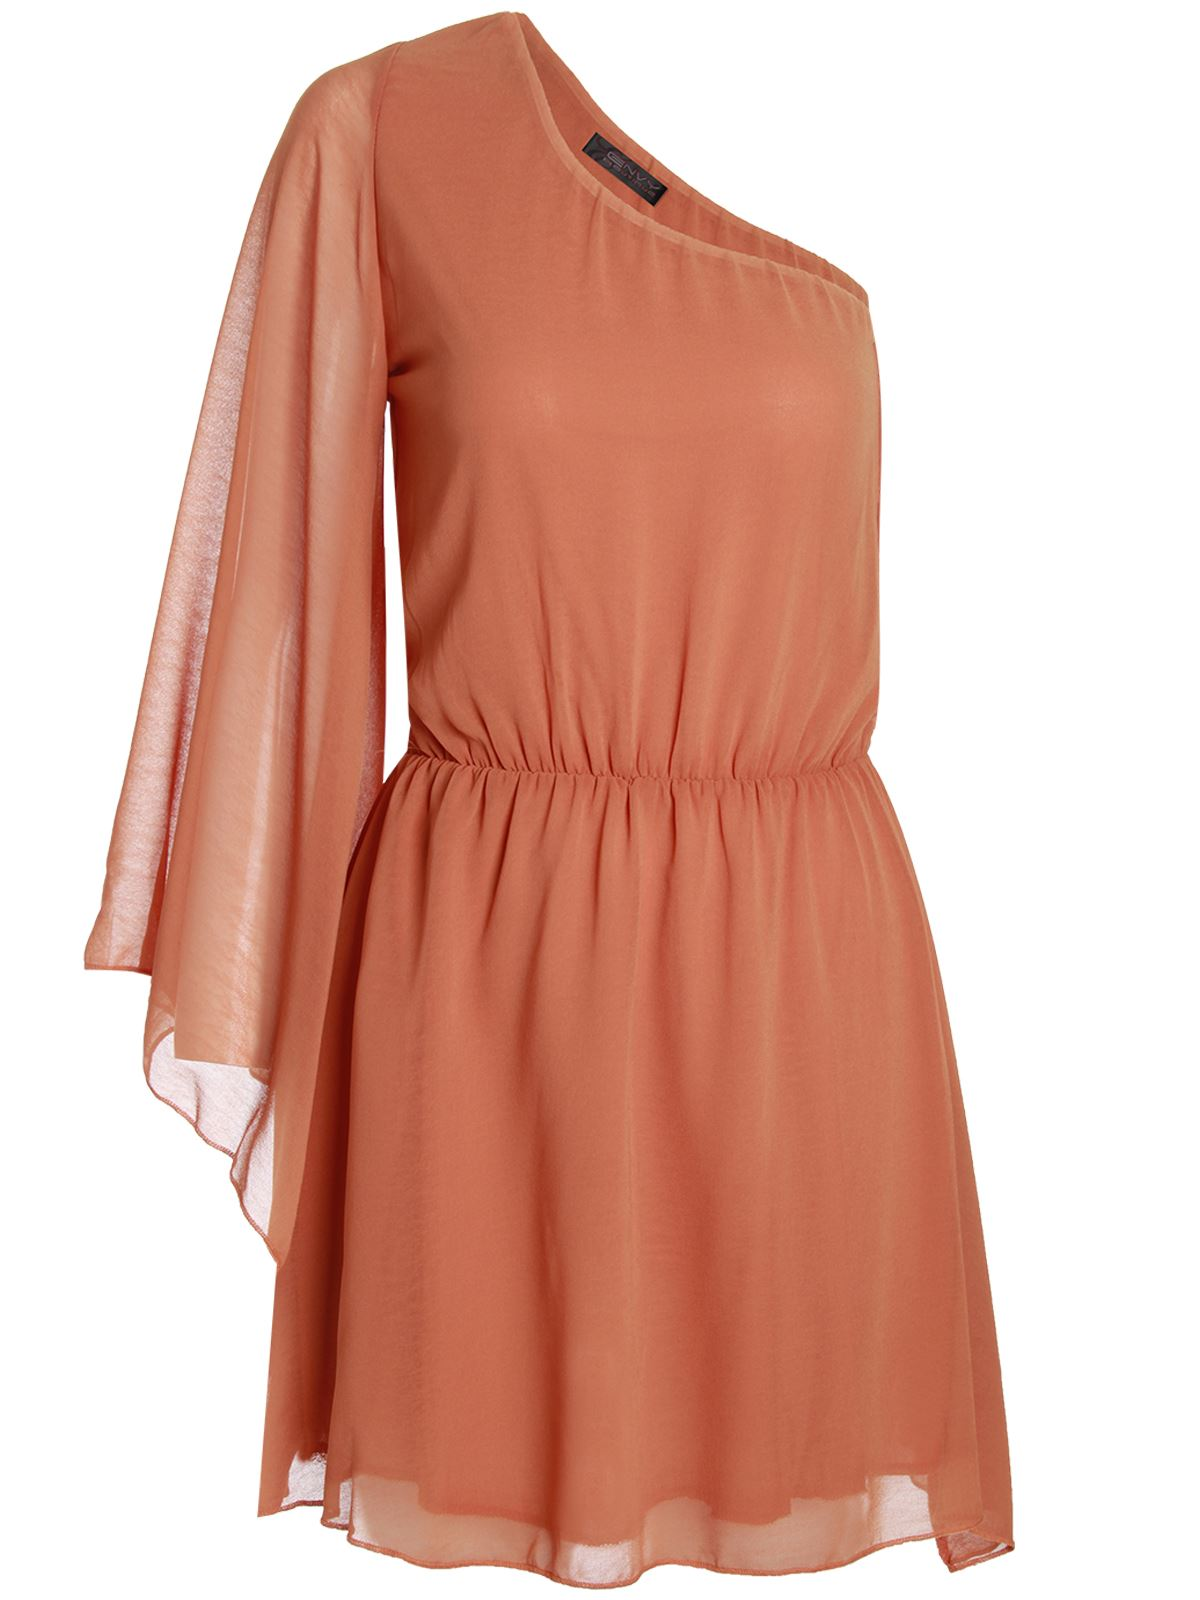 Galerry flared arm dress